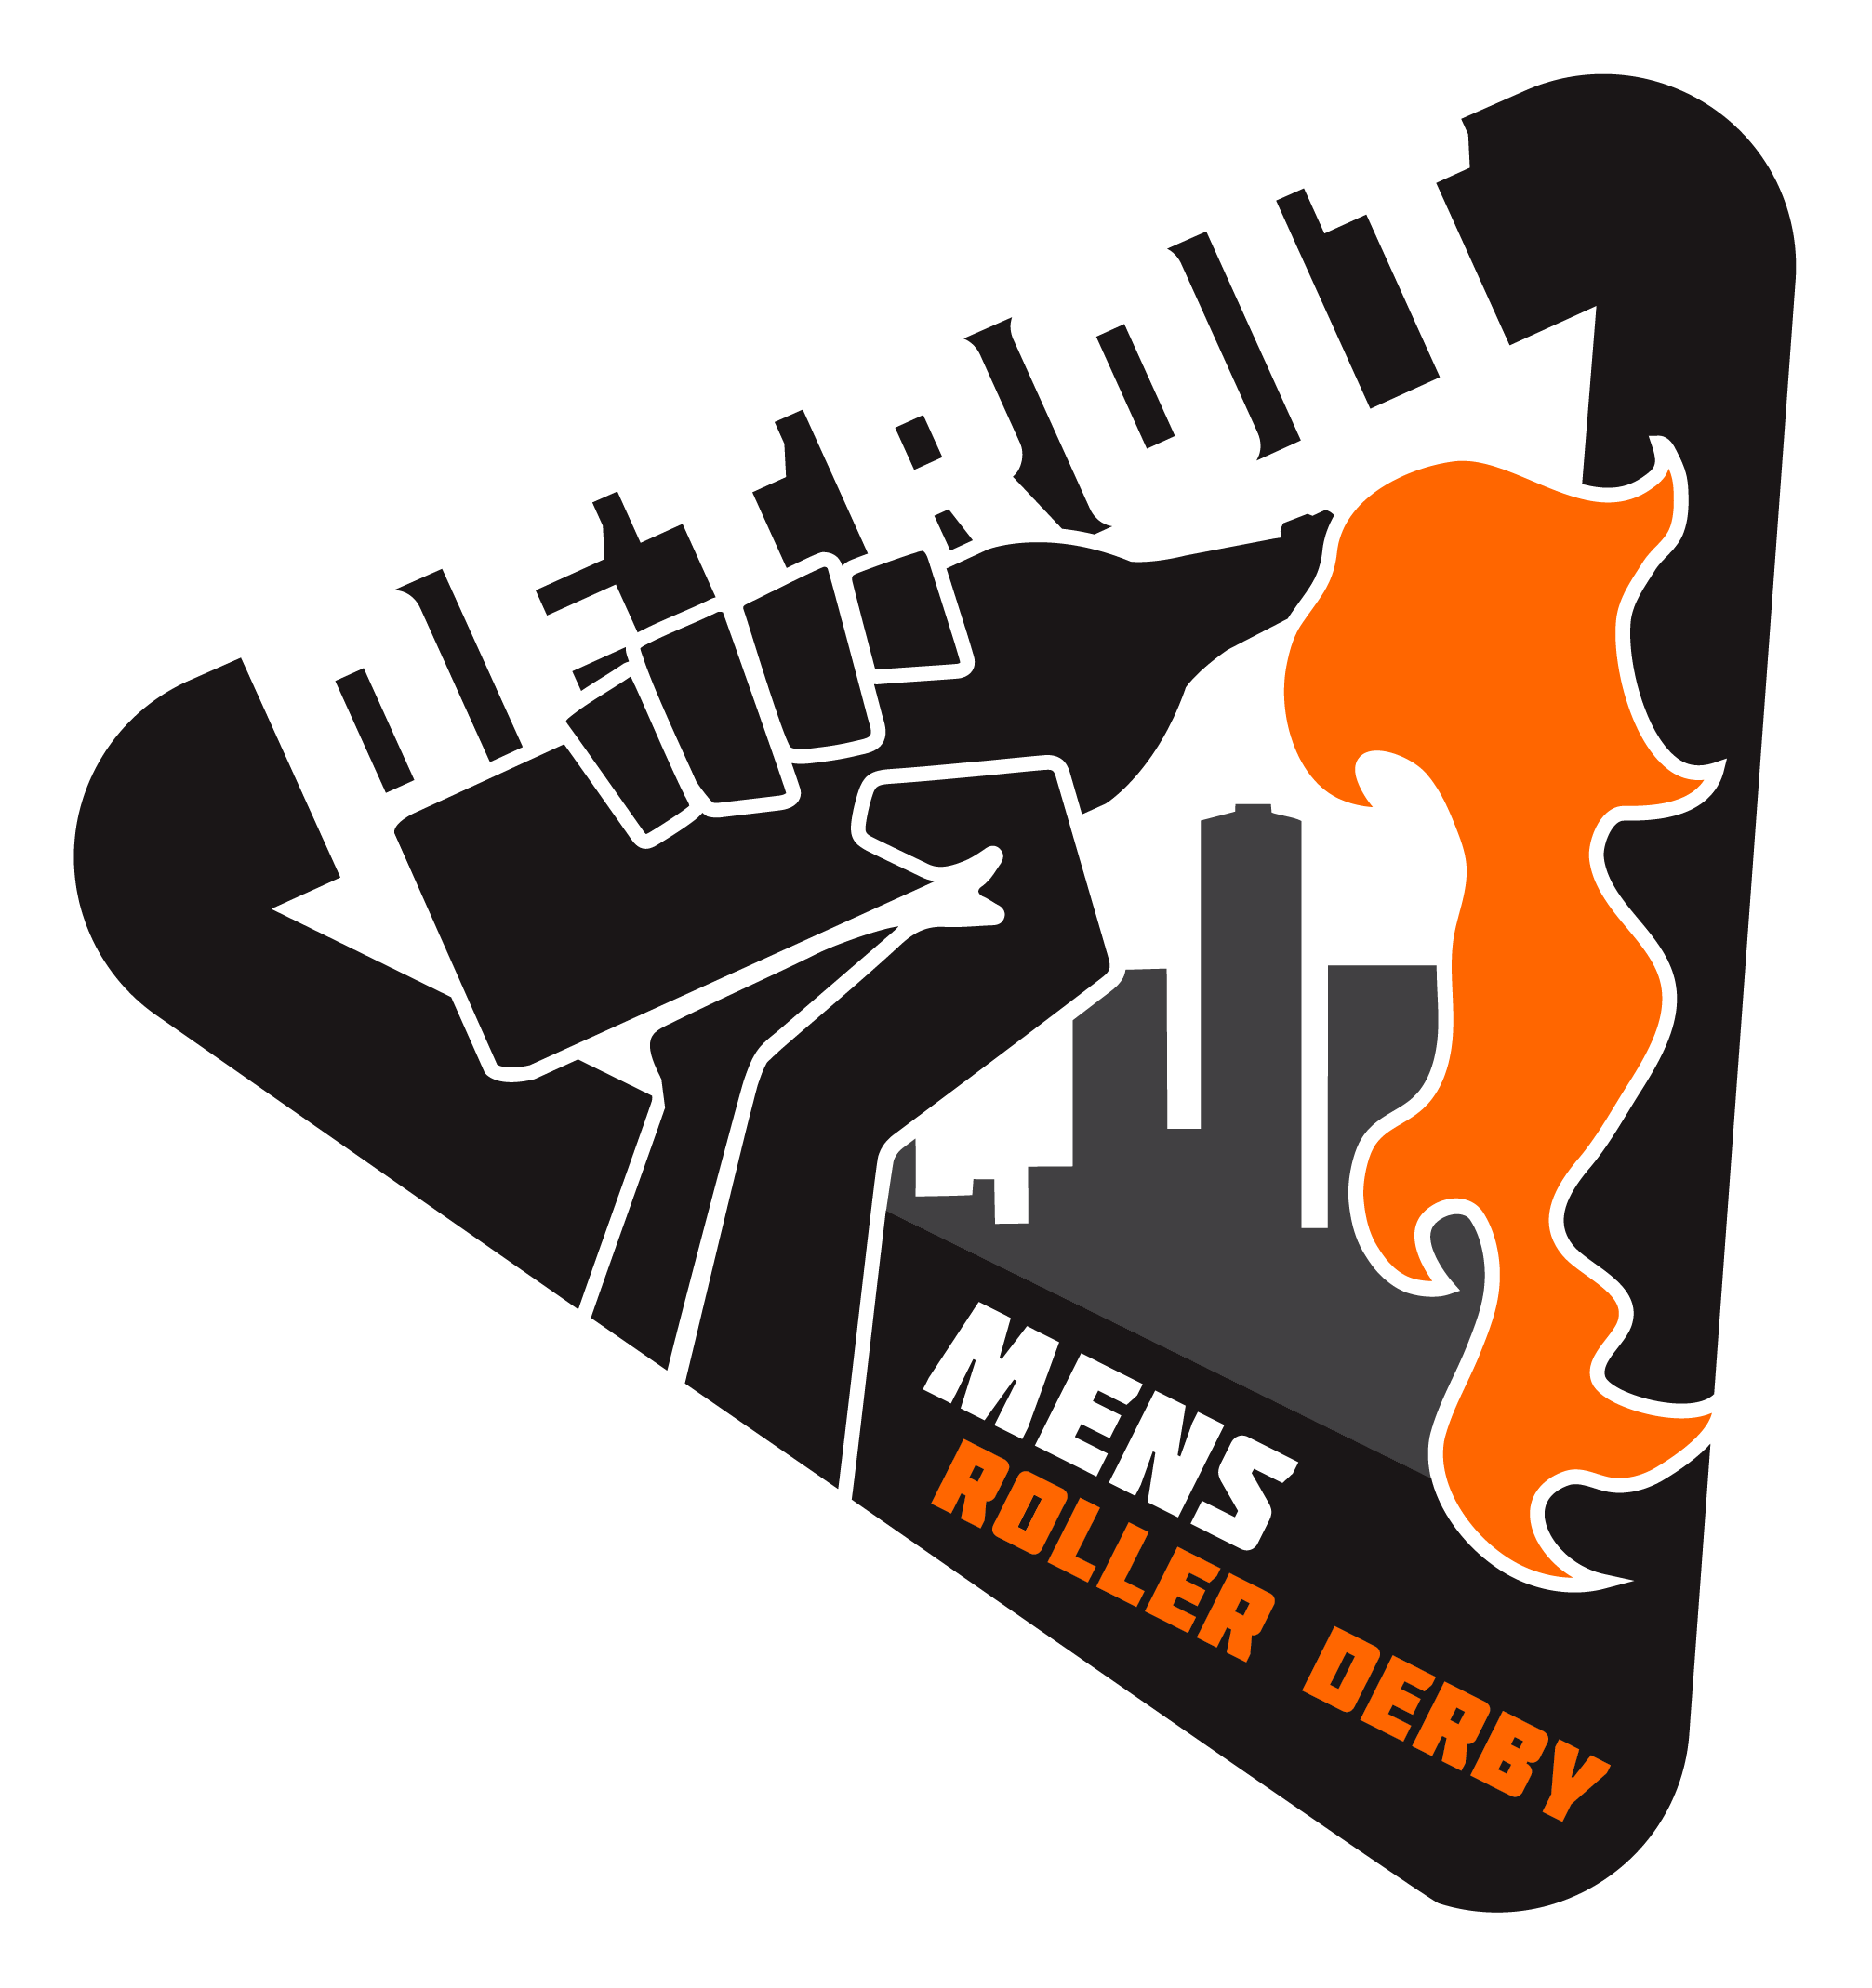 Detroit Men's Roller Derby